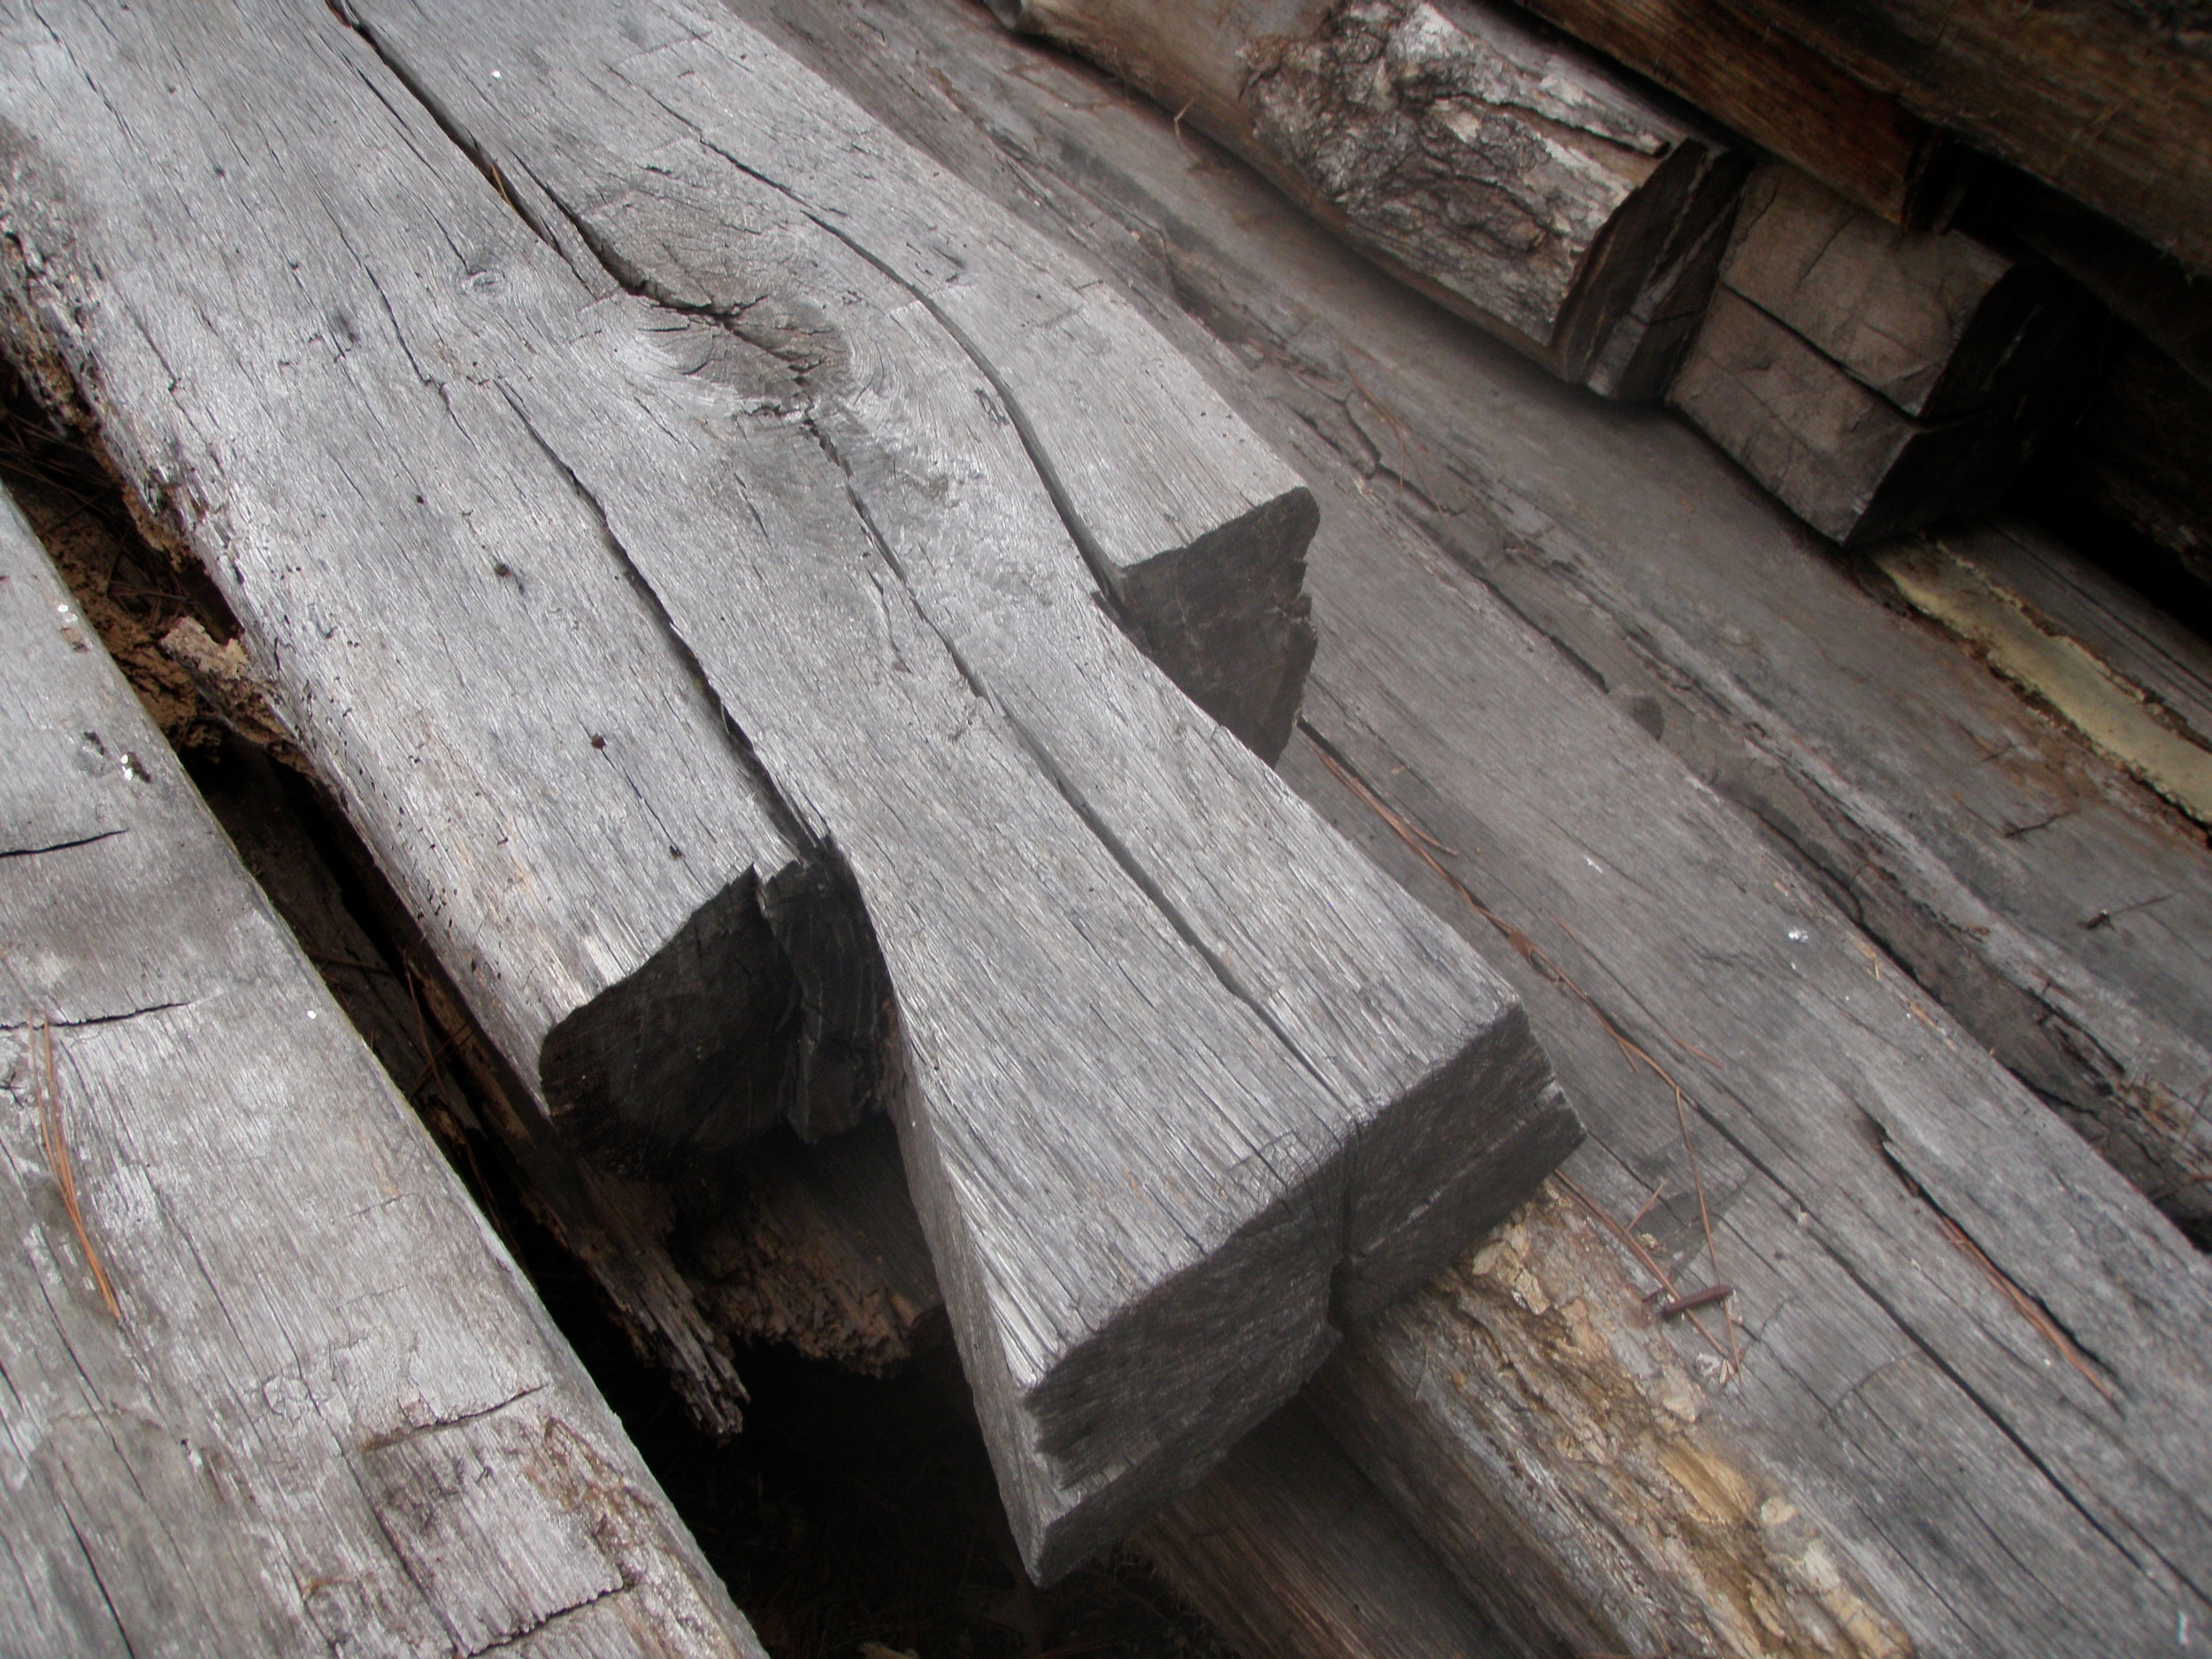 100 year old dovetail - beautiful!